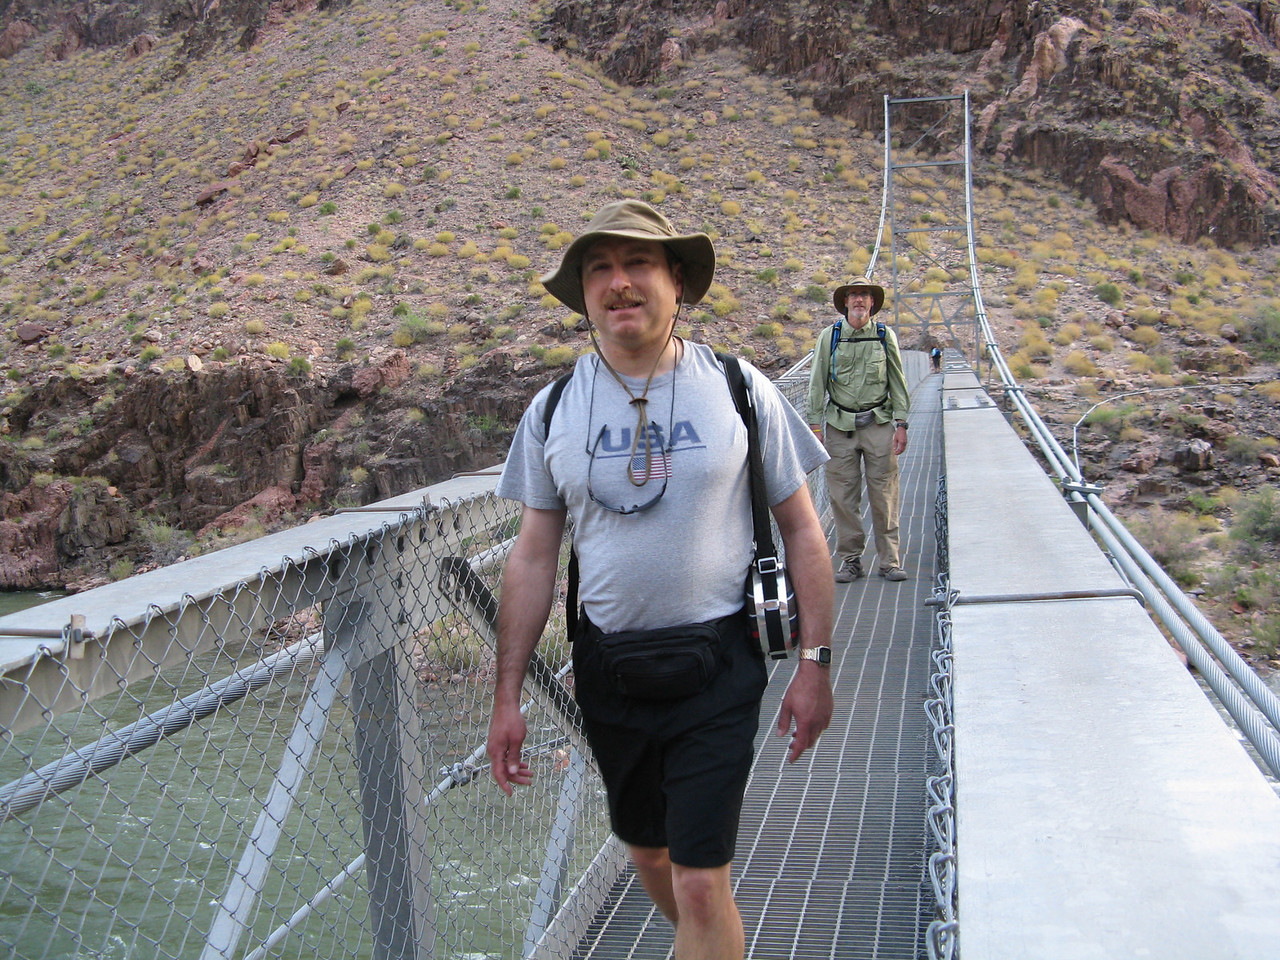 The Silver Bridge occurs at 0.7 mile from Phantom Ranch and 2450 feet of elevation above sea level.<br /> <br /> On the Silver Bridge, Dariusz and Glenn are walking towards the south side of the river.